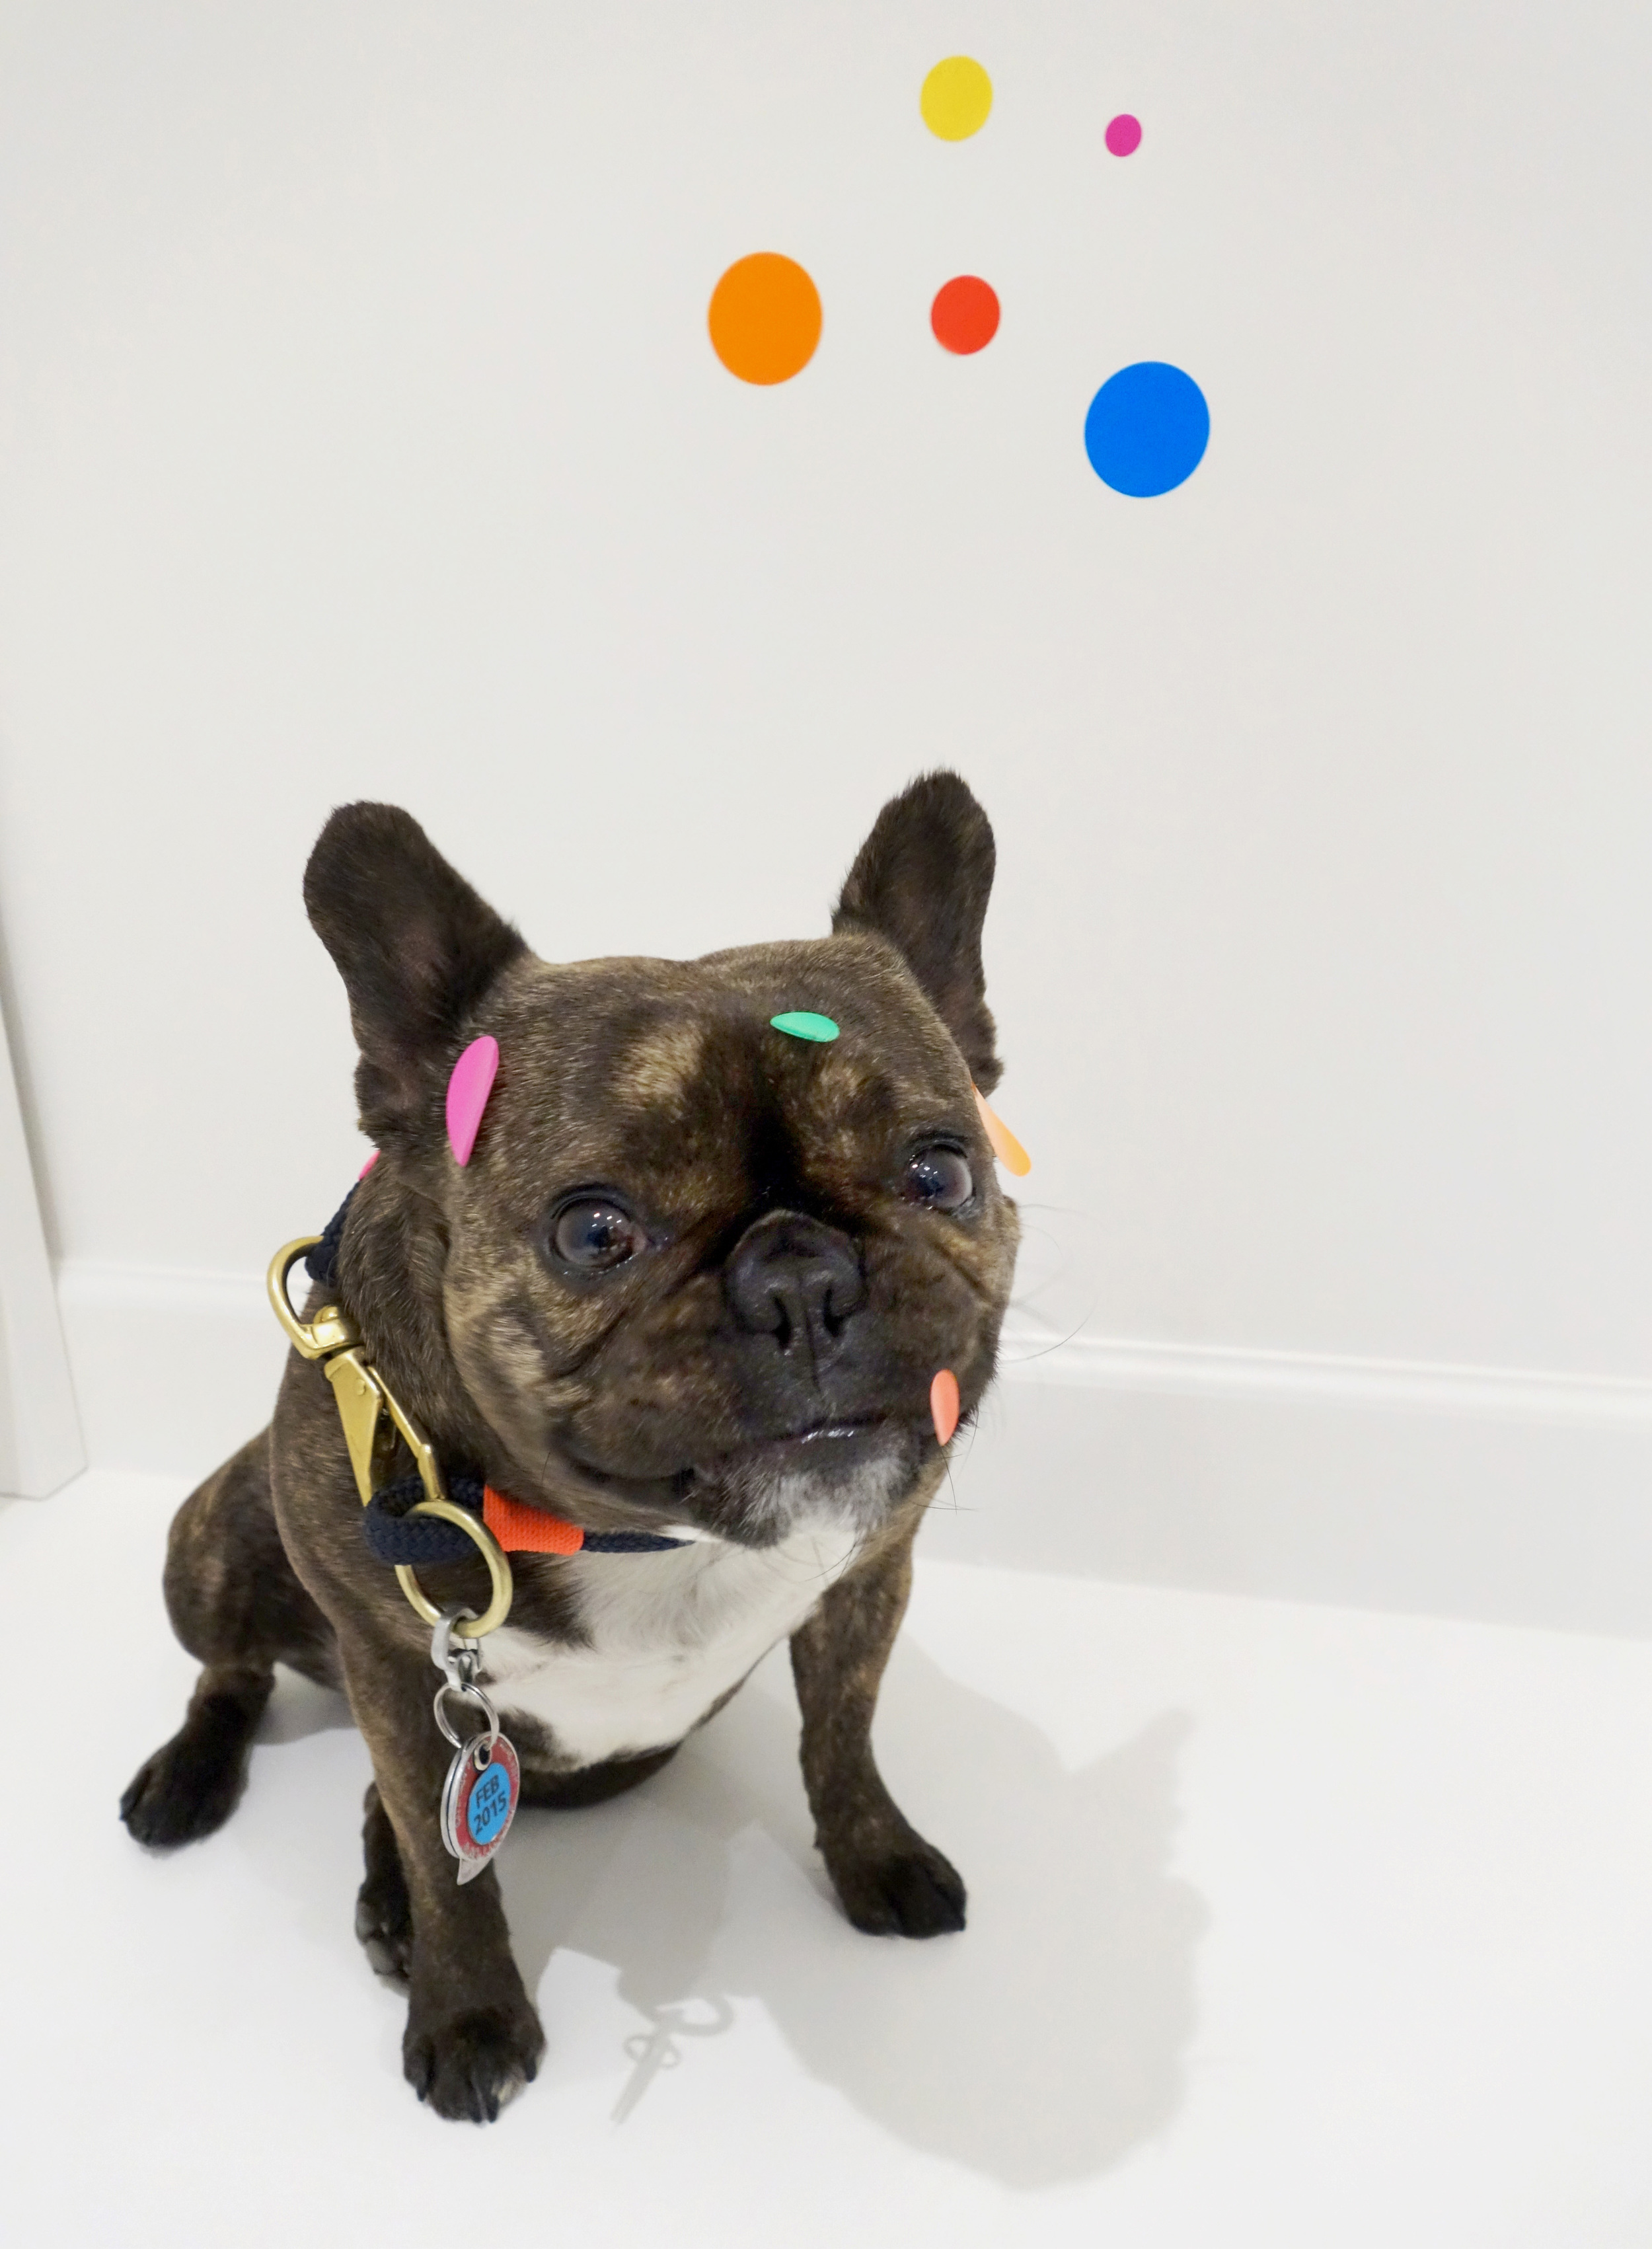 """I got stickers in my mouth!  Yayoi Kusama """"The obliteration room,"""" 2002-Present in Give Me Love at David Zwirner."""